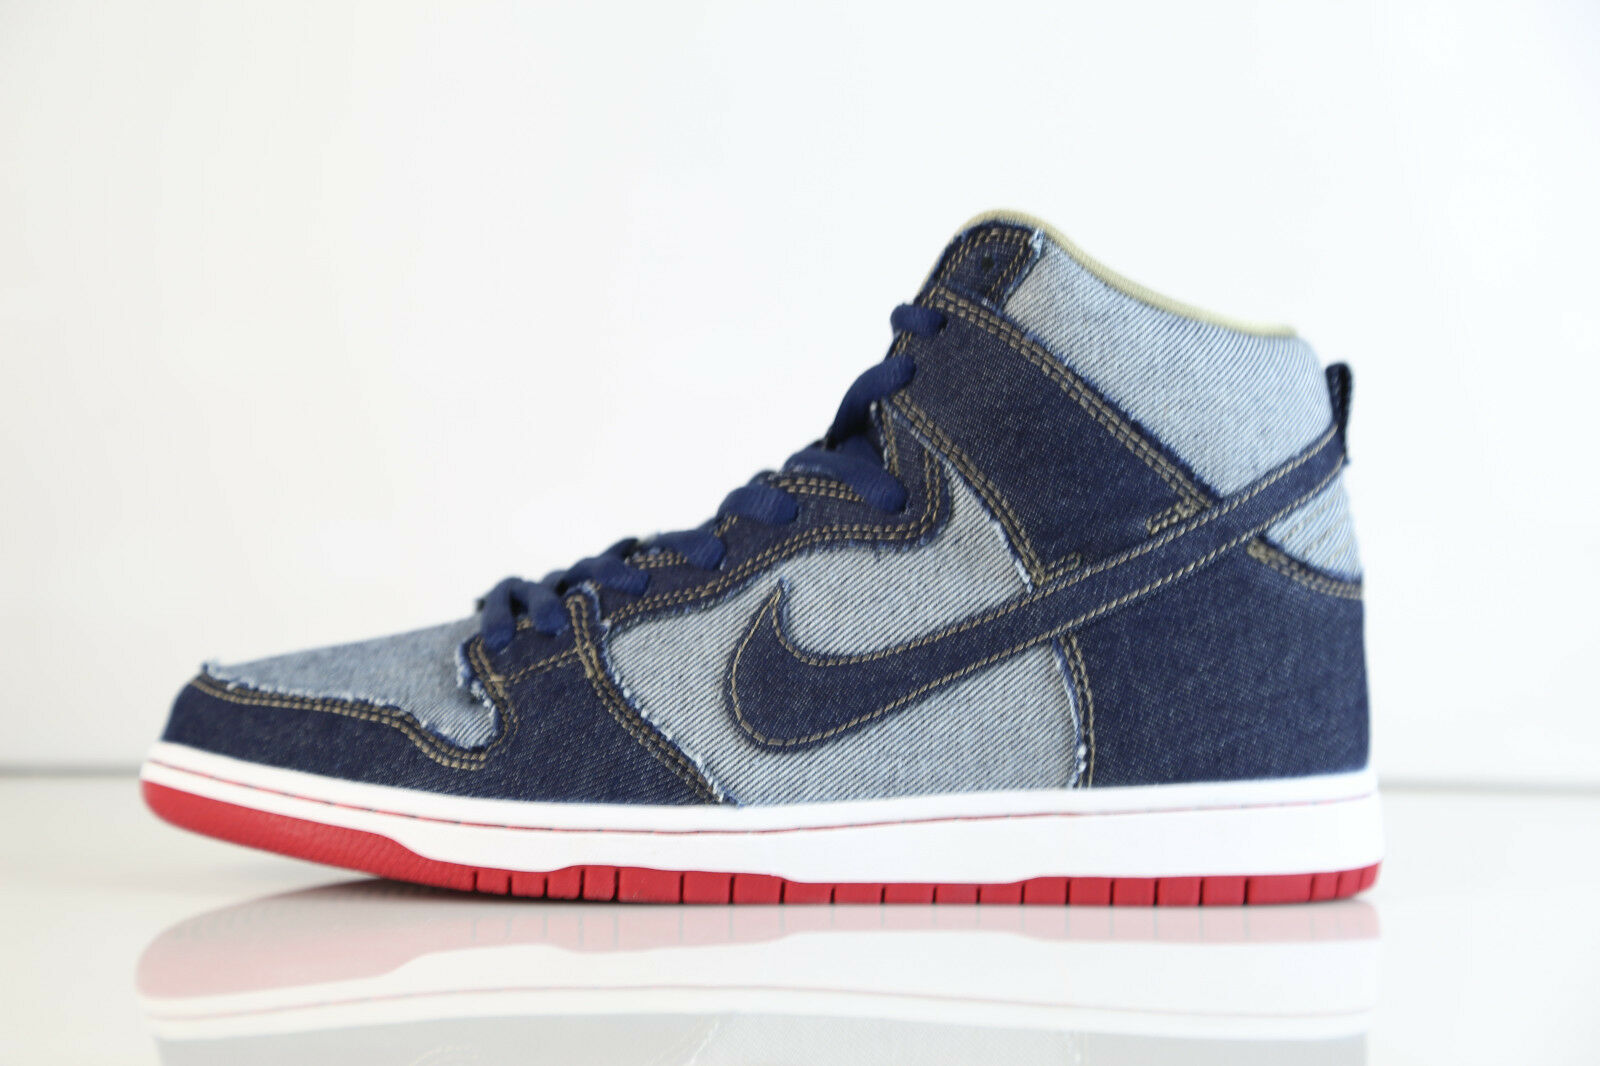 Nike Dunk High Premium Pro SB TRD QS Midnight Navy Reese Forbes Denim 881758-441